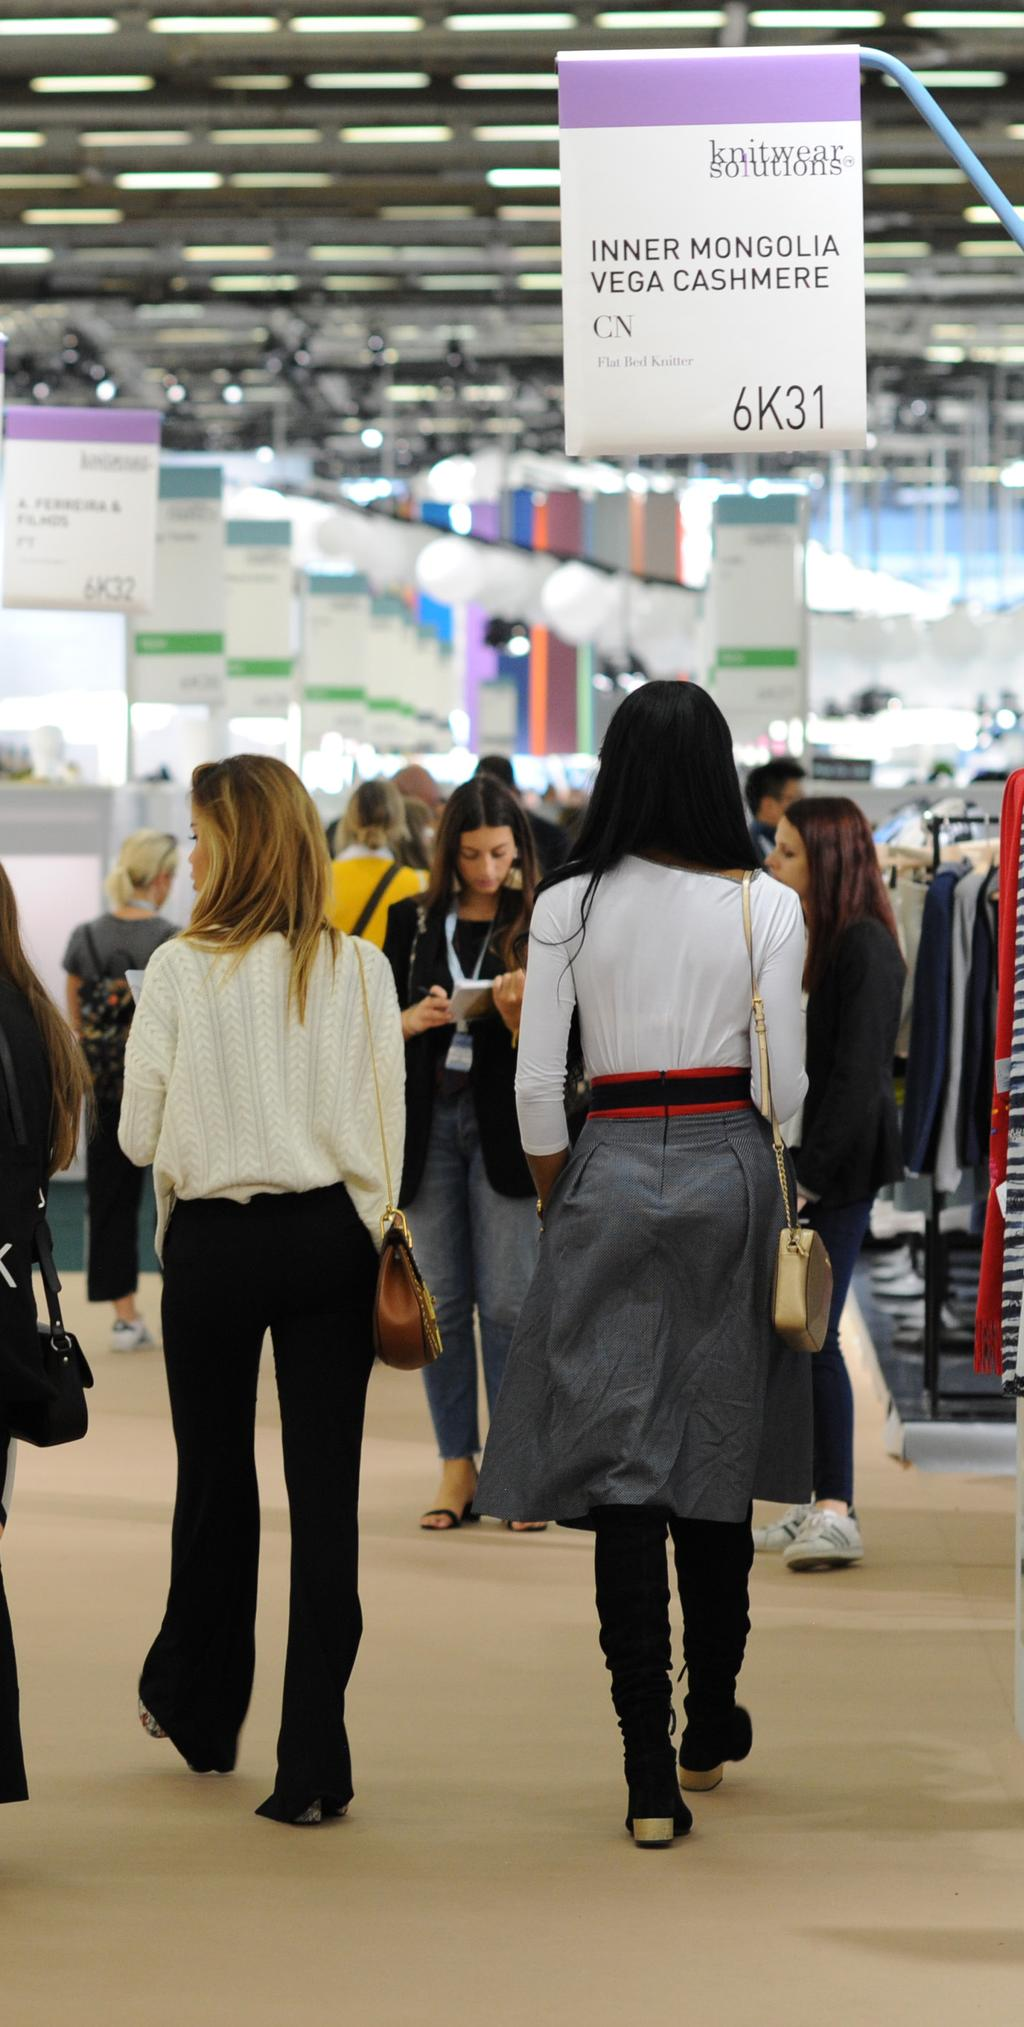 KNITWEAR SOLUTIONS TARGET WHO ARE THE VISITORS? VISITORS, an international target The KNITWEAR SOLUTIONS exhibitors welcomed high-quality visitors, comprised of product managers, buyers and designers.